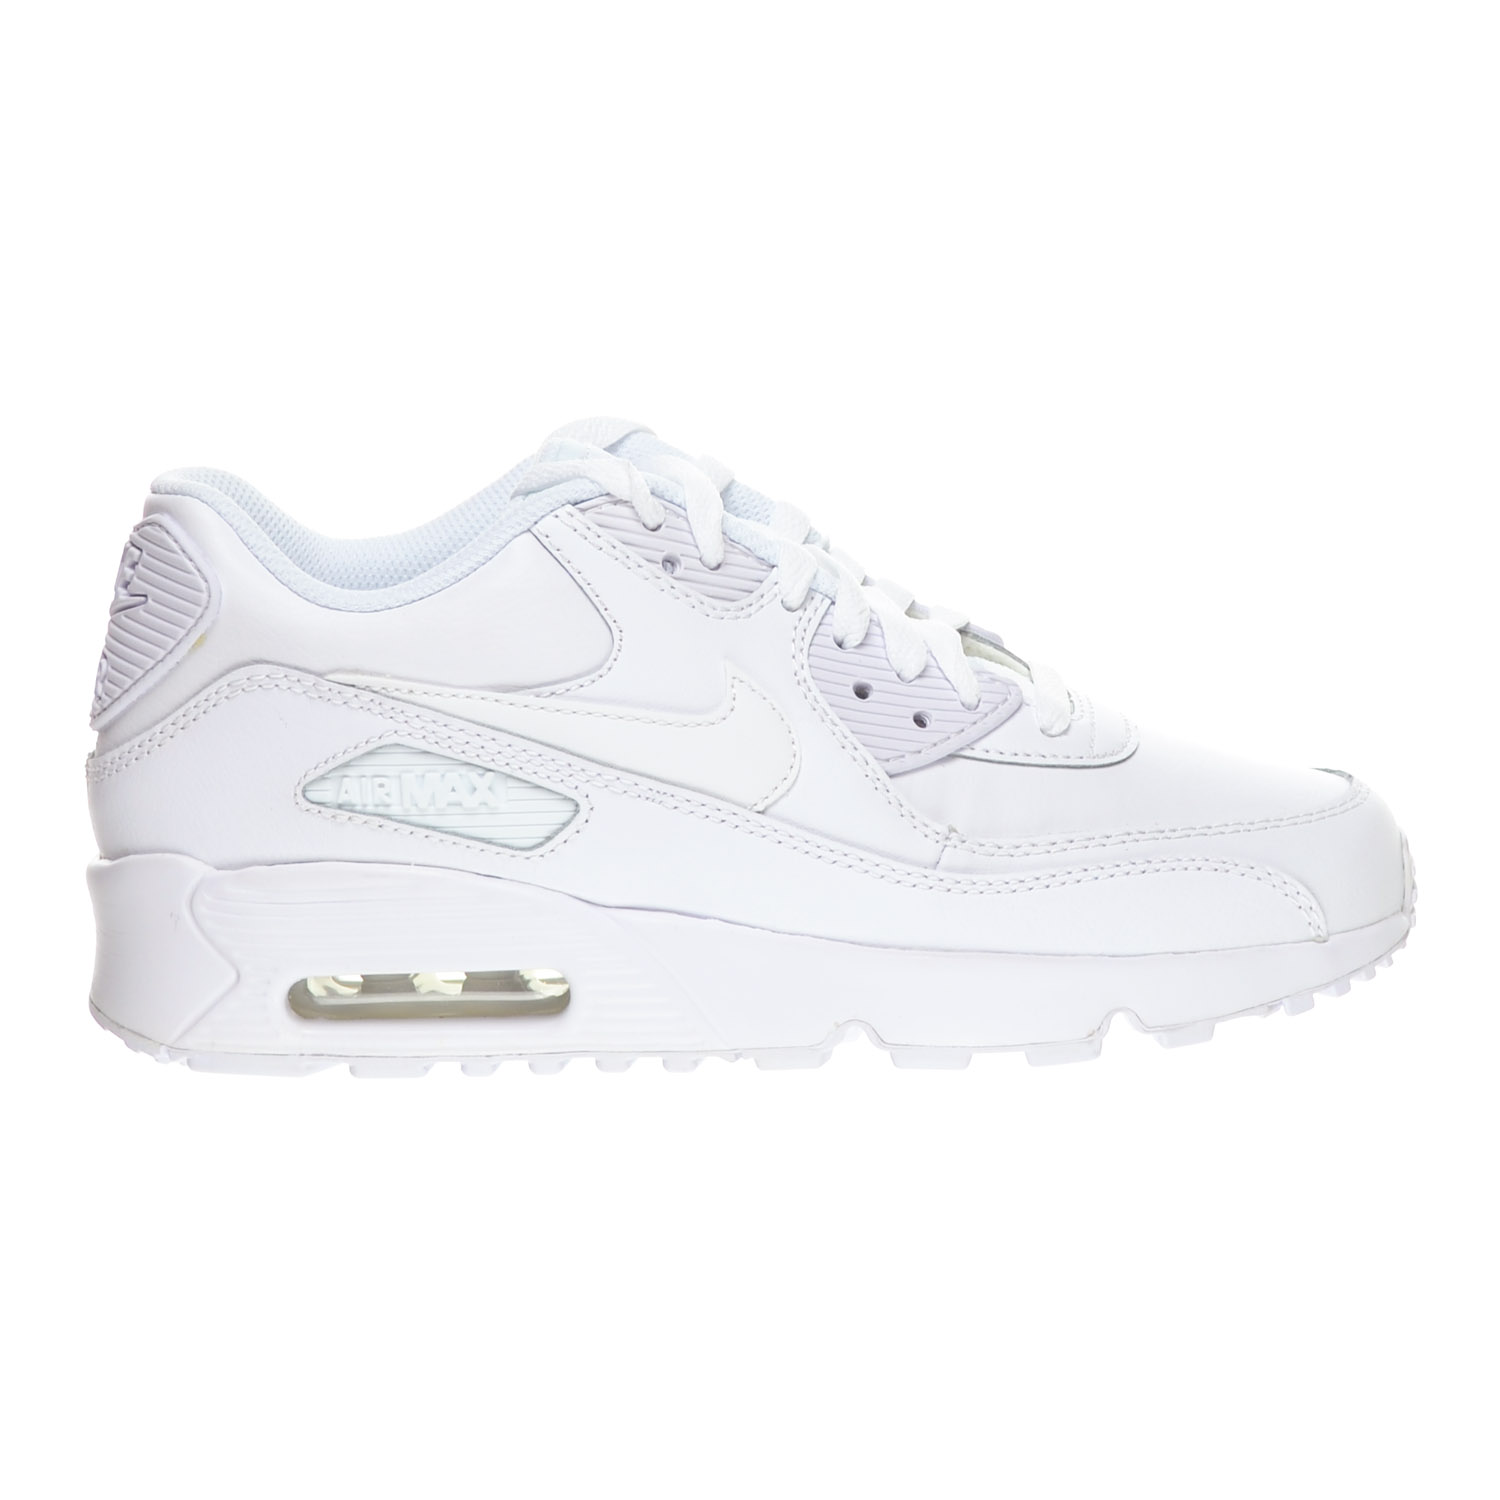 Child's Nike Air Max 90 Tennis Sneaker Shoes